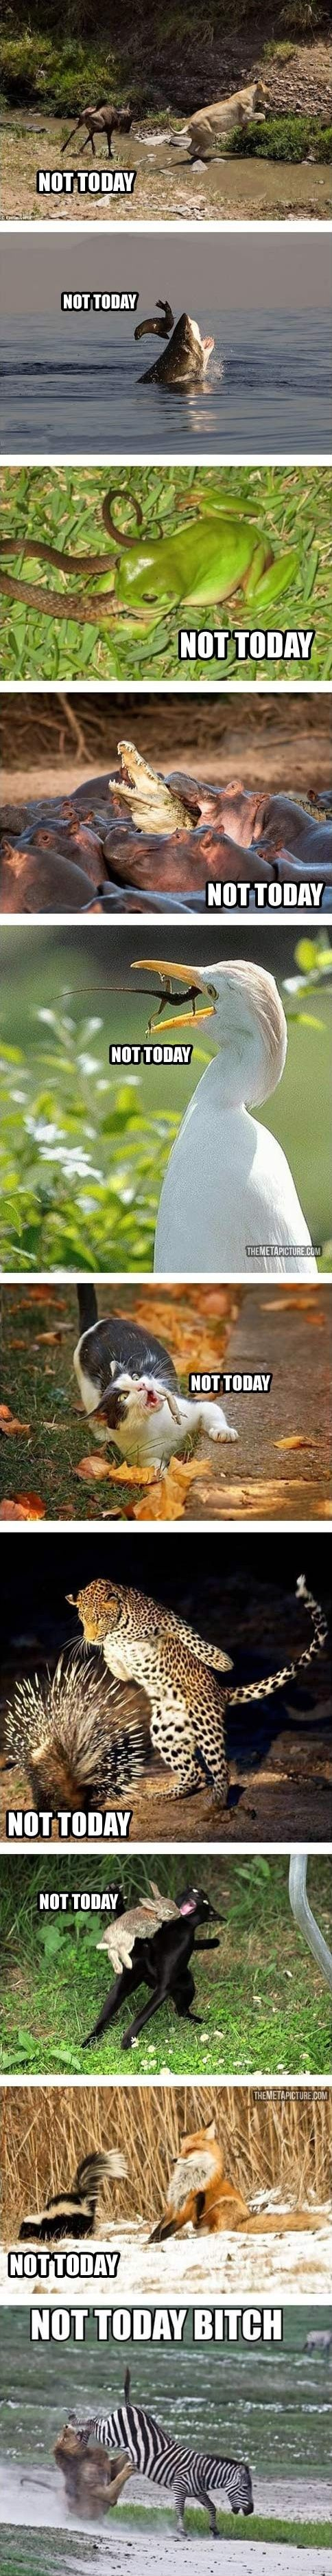 Not today. hahaha :) This is perfect for how I feel today.